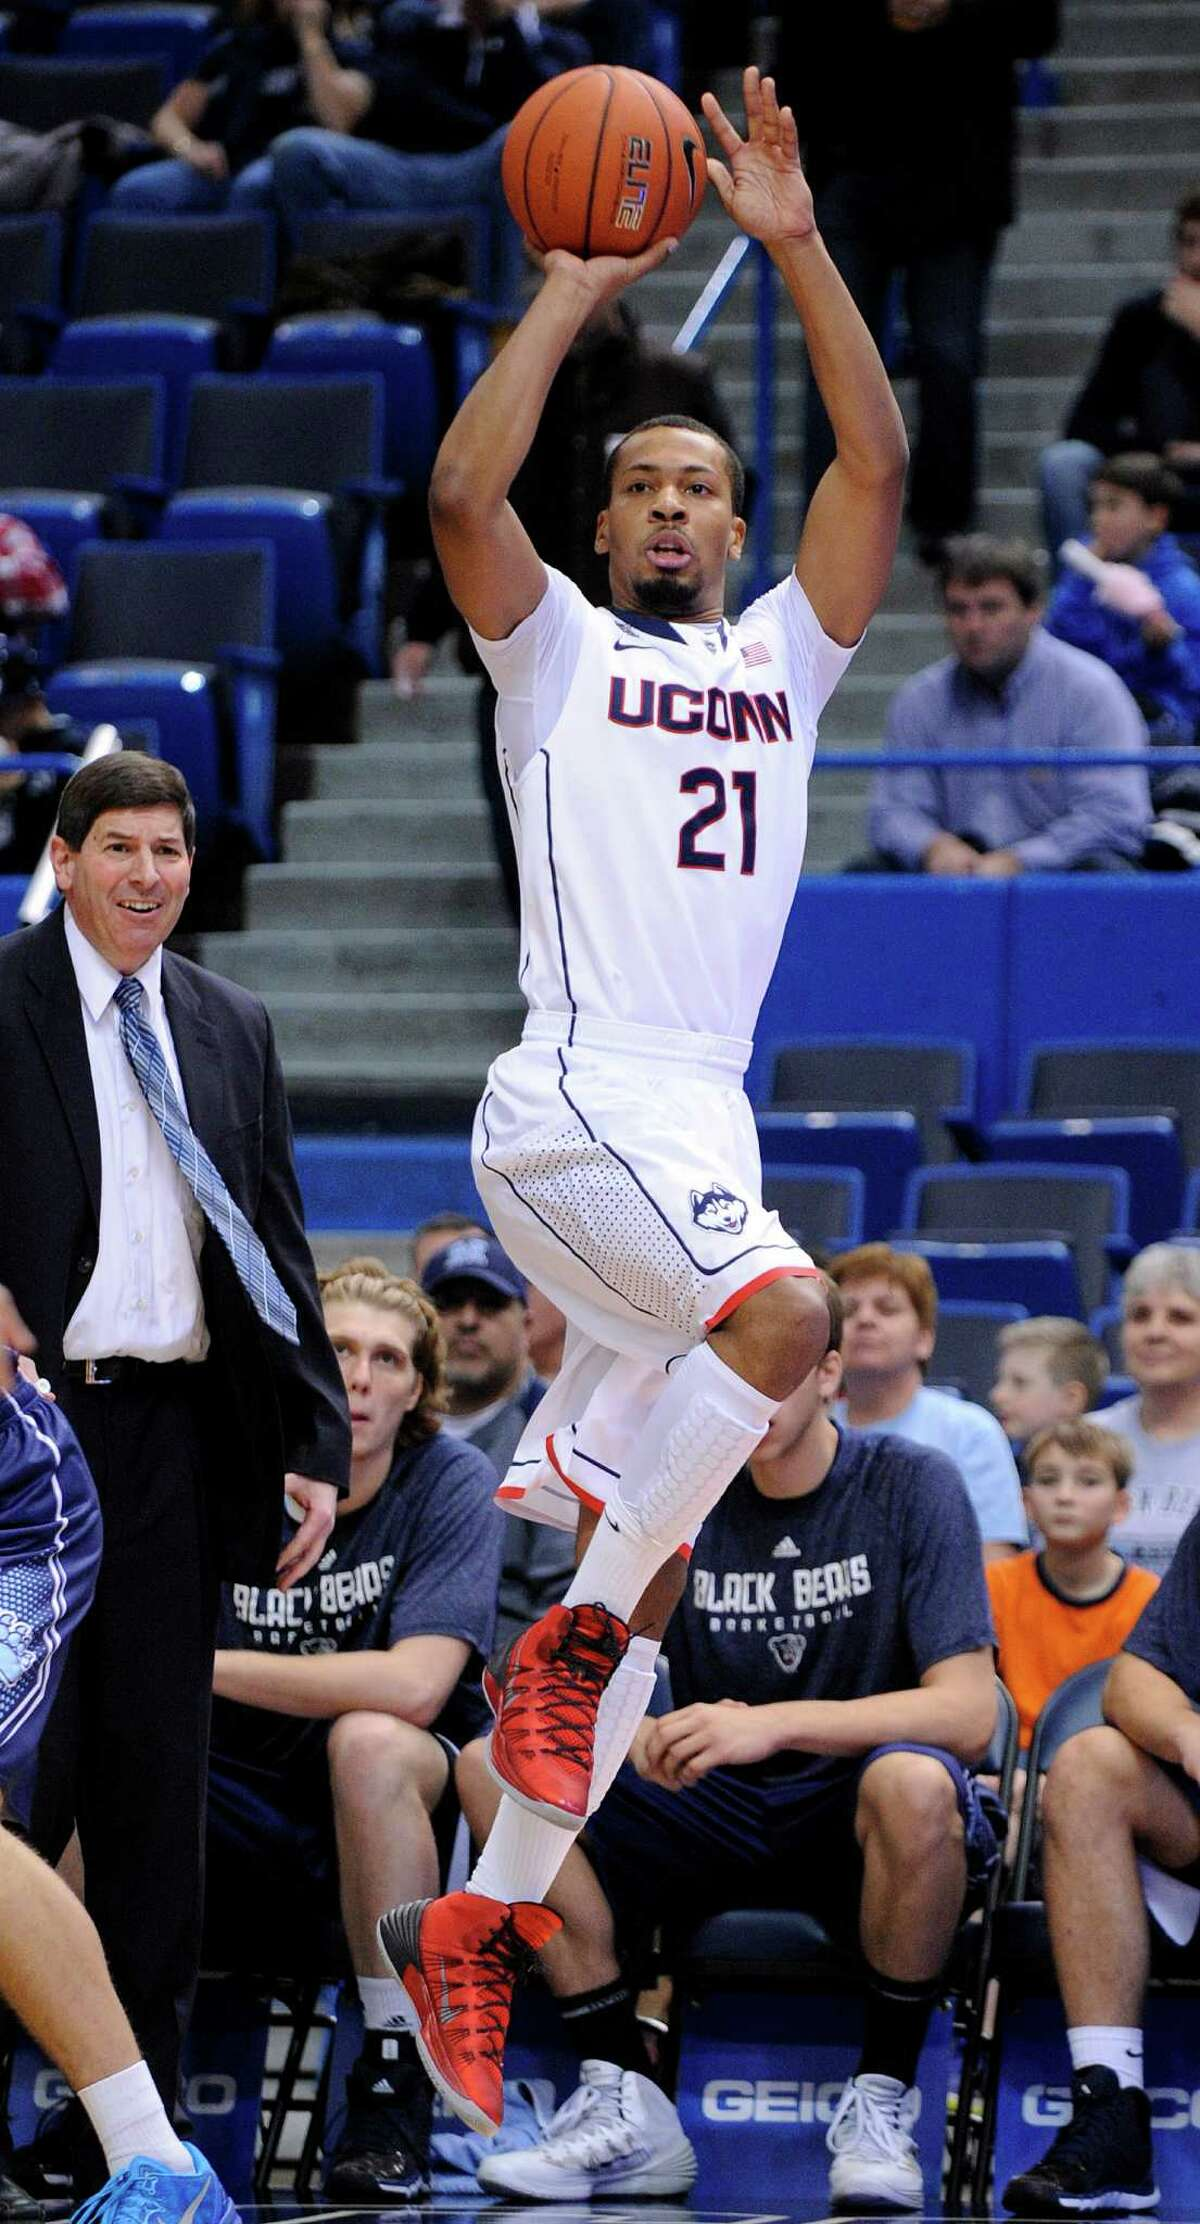 Connecticut's Omar Calhoun (21) shoots during the first half of Connecticut's 95-68 victory over Maine in an NCAA college basketball game, in Hartford, Conn., on Friday, Dec. 6, 2013. (AP Photo/Fred Beckham)